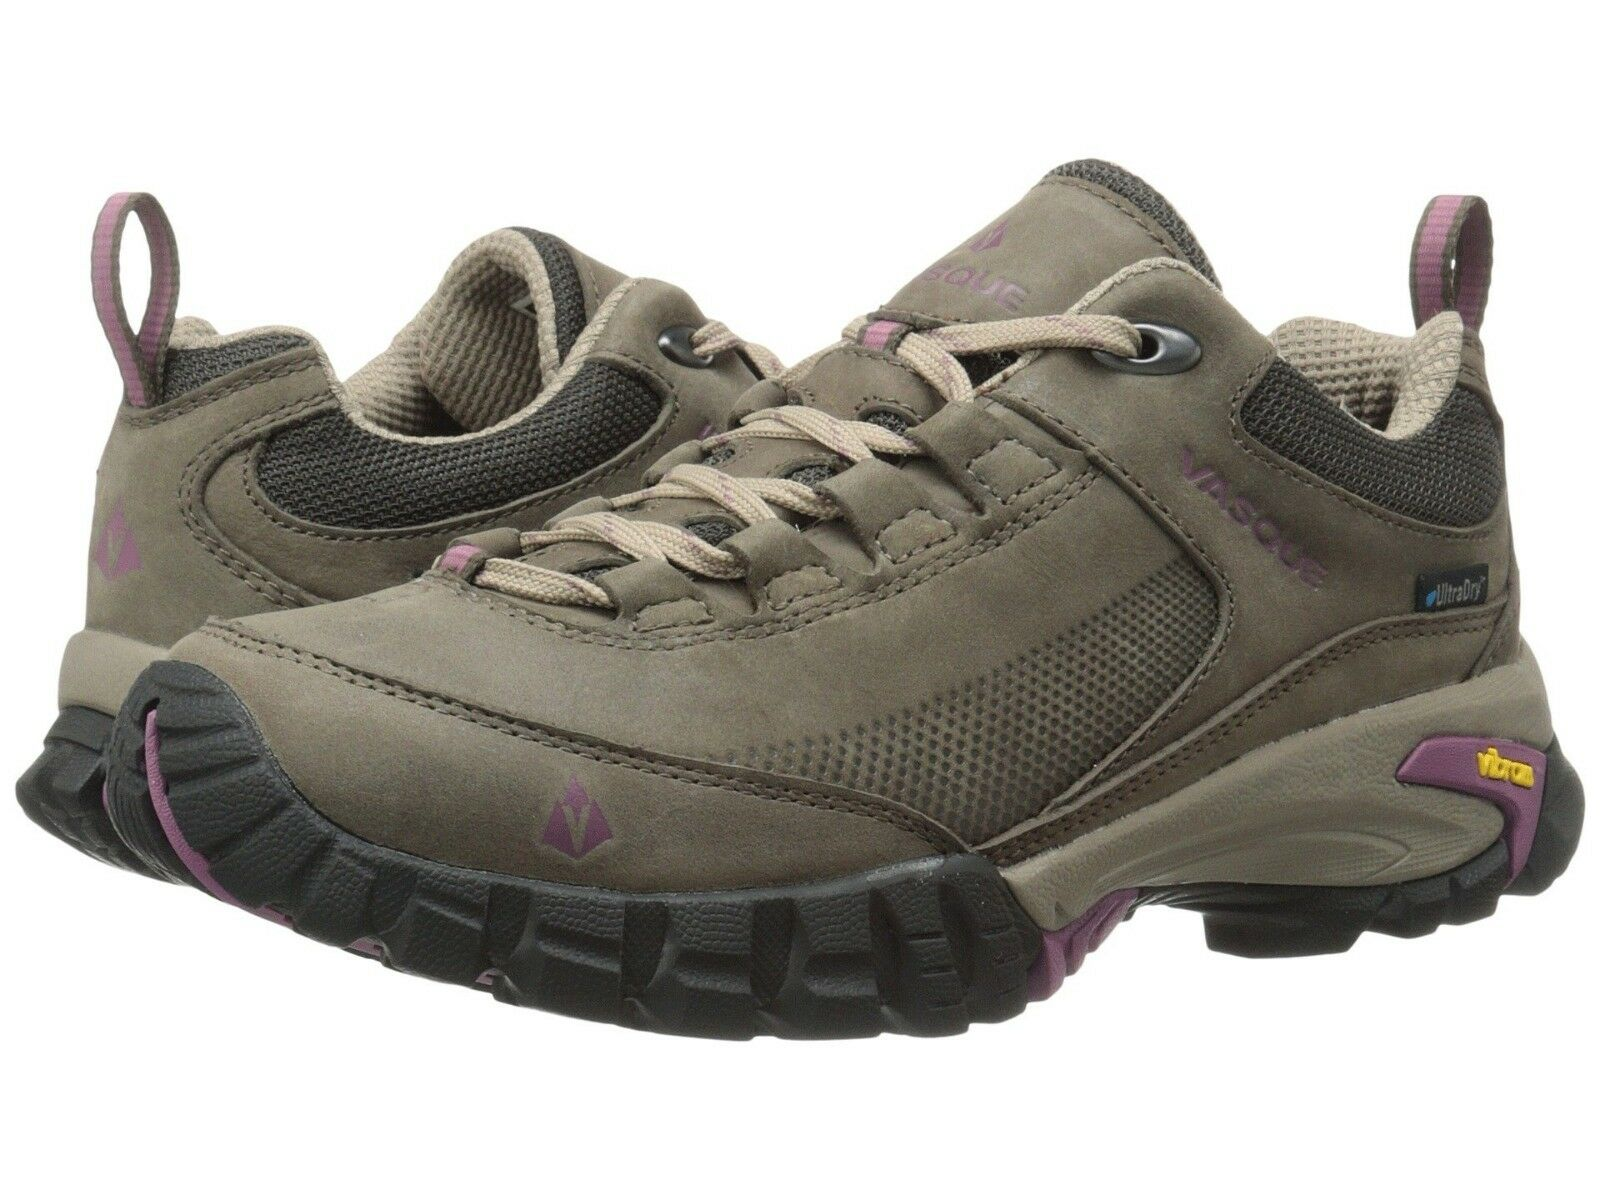 40% OFF  NEW WMN'S VASQUE TALUS TREK LOW ULTRADRY  BOOTS, US 7, OLIVE.